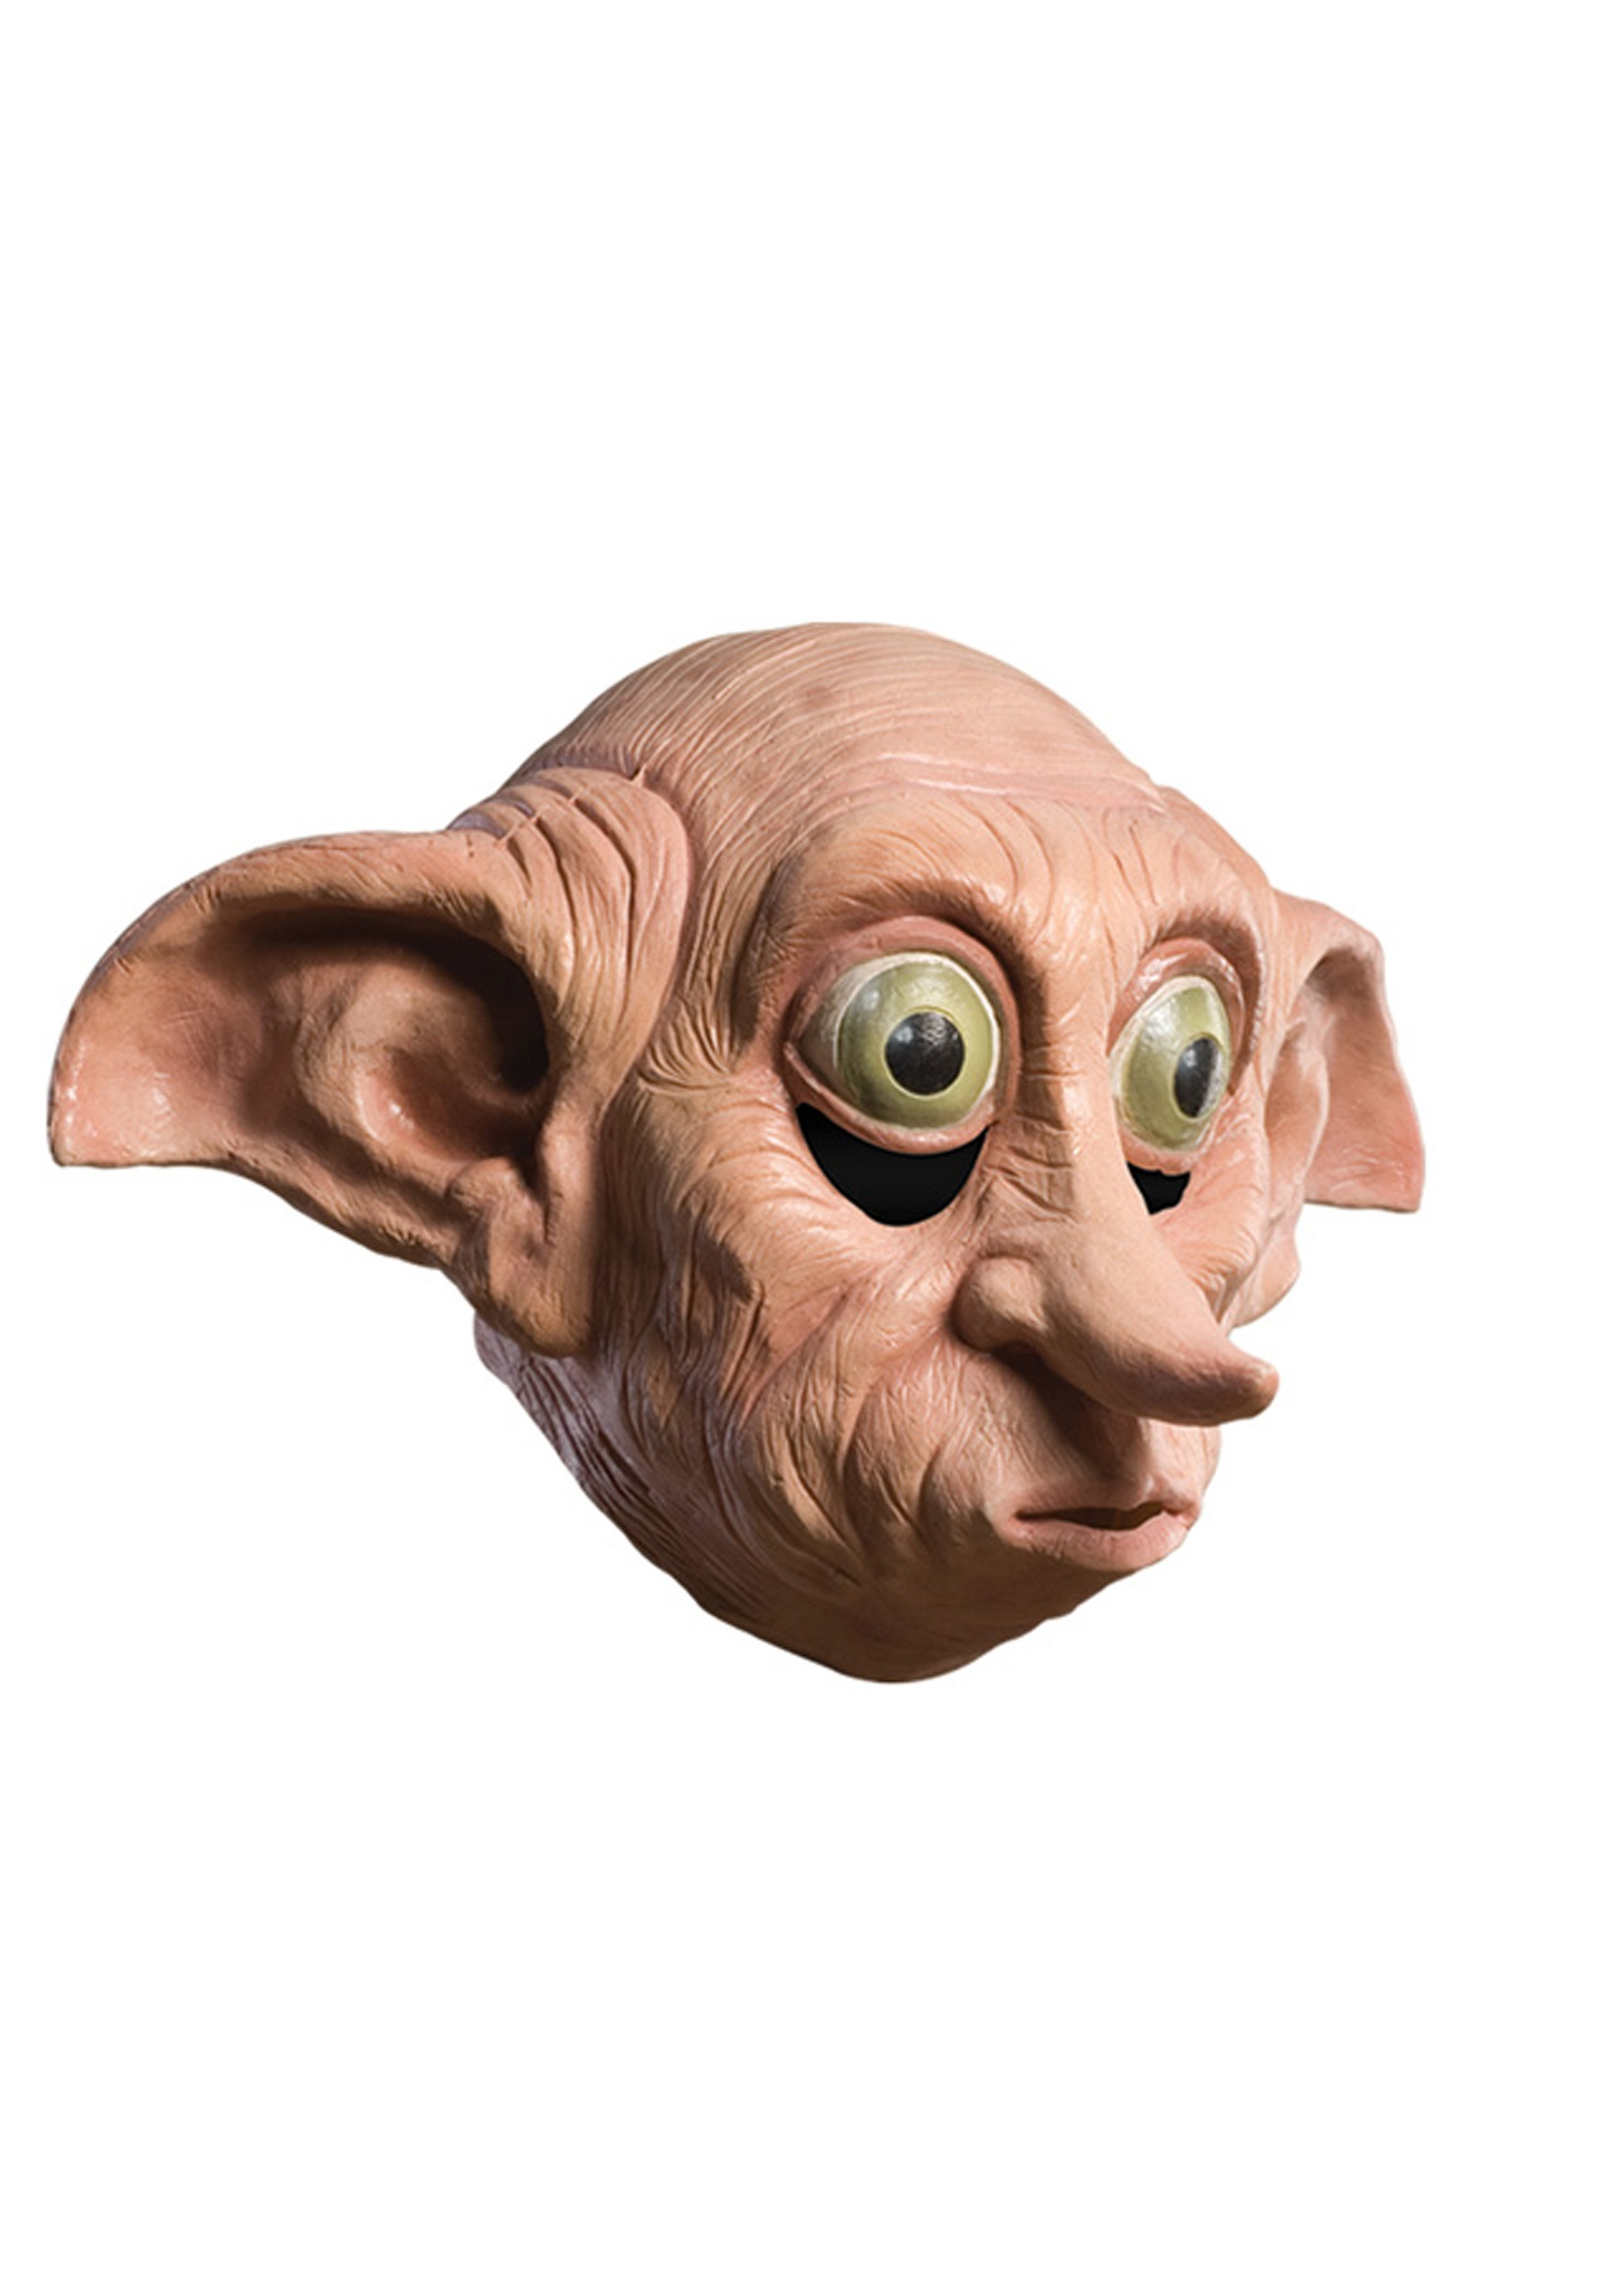 House Elf Dobby Mask  sc 1 st  Halloween Costume & House Elf Dobby Mask - Costume Masks for Dobby the House Elf